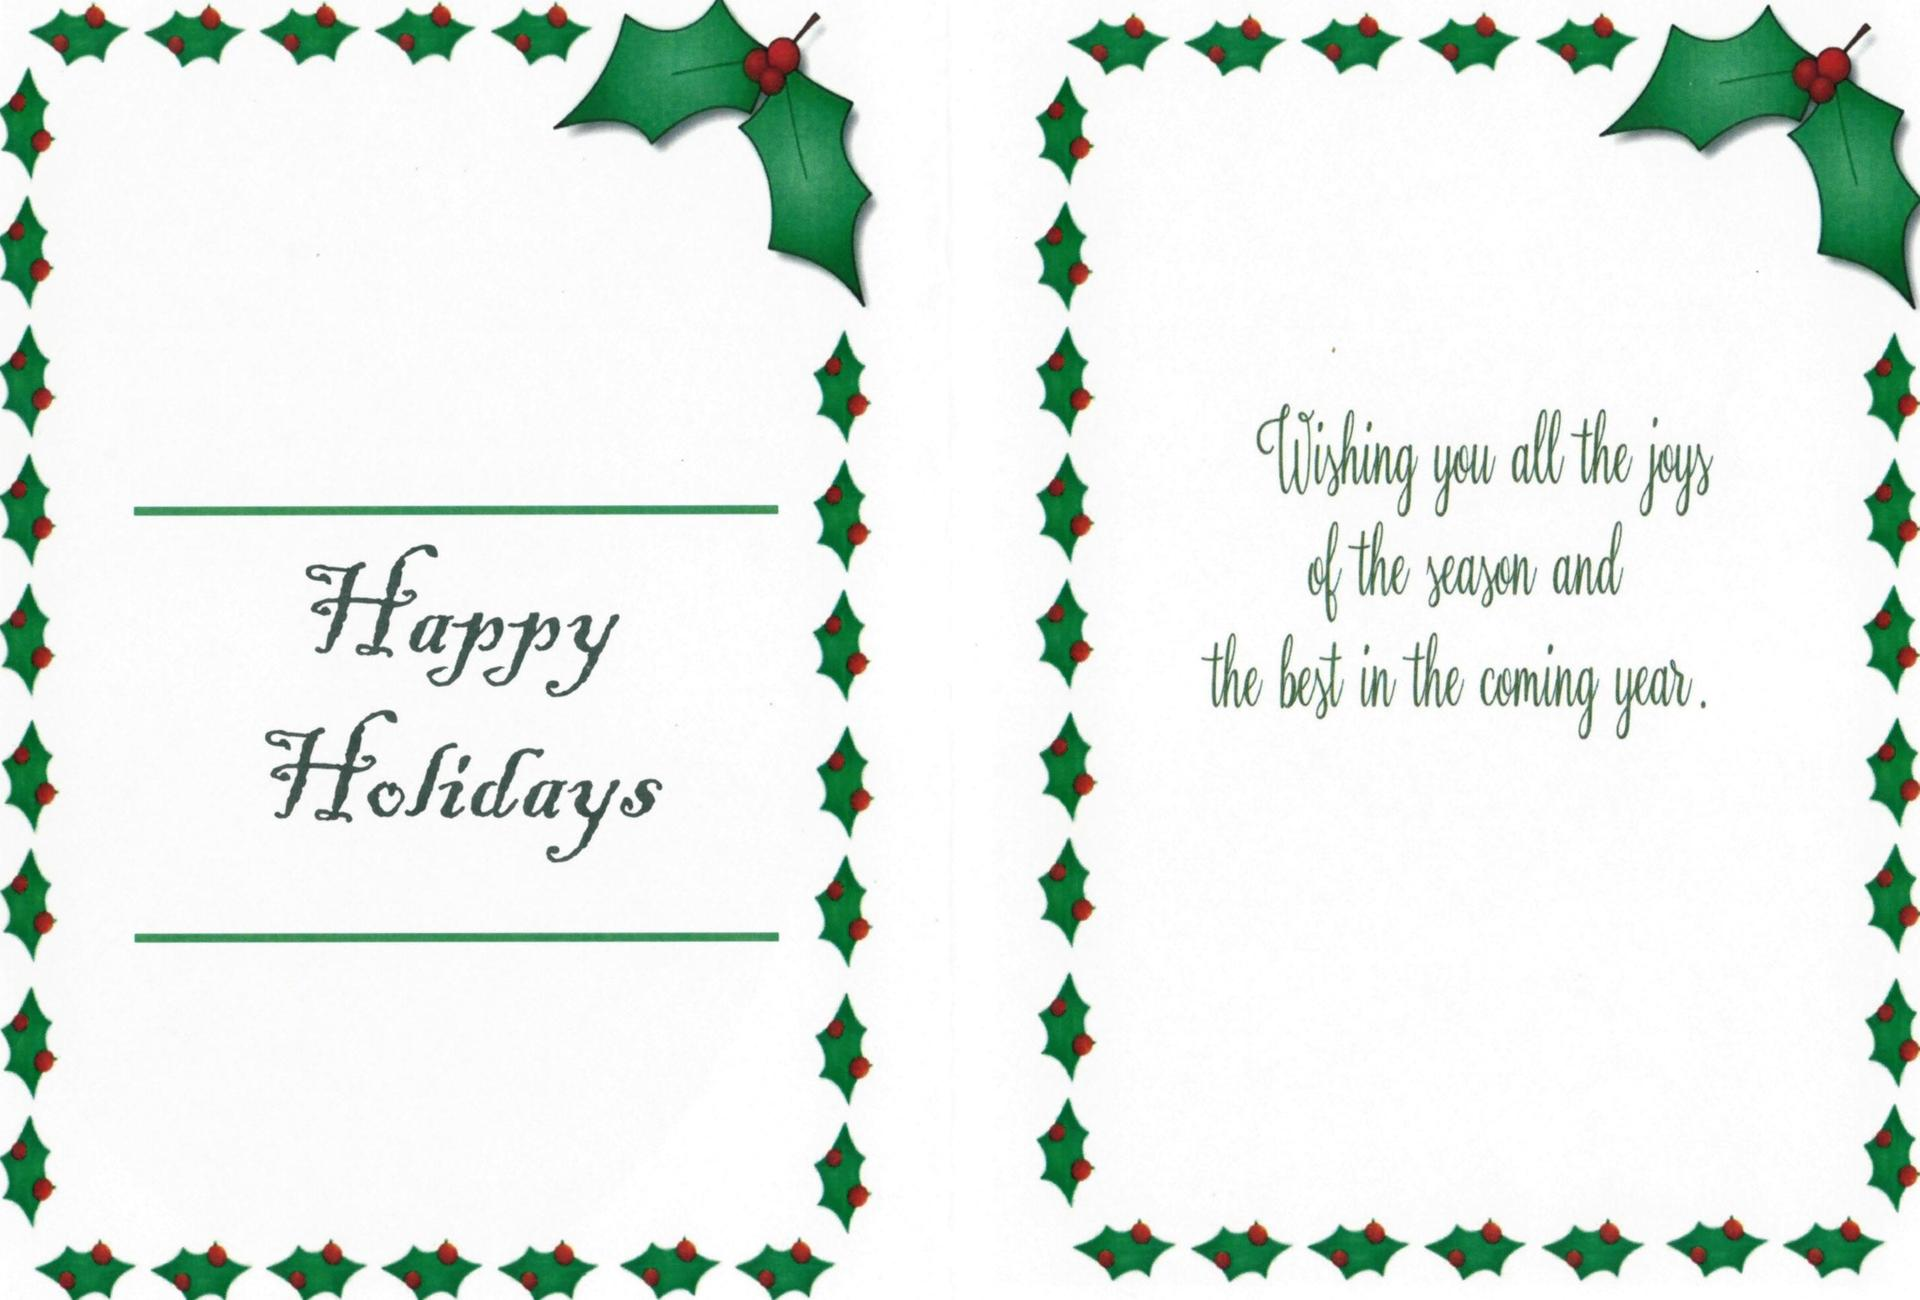 a photo of a holiday card designed by a Baker High CTE Student